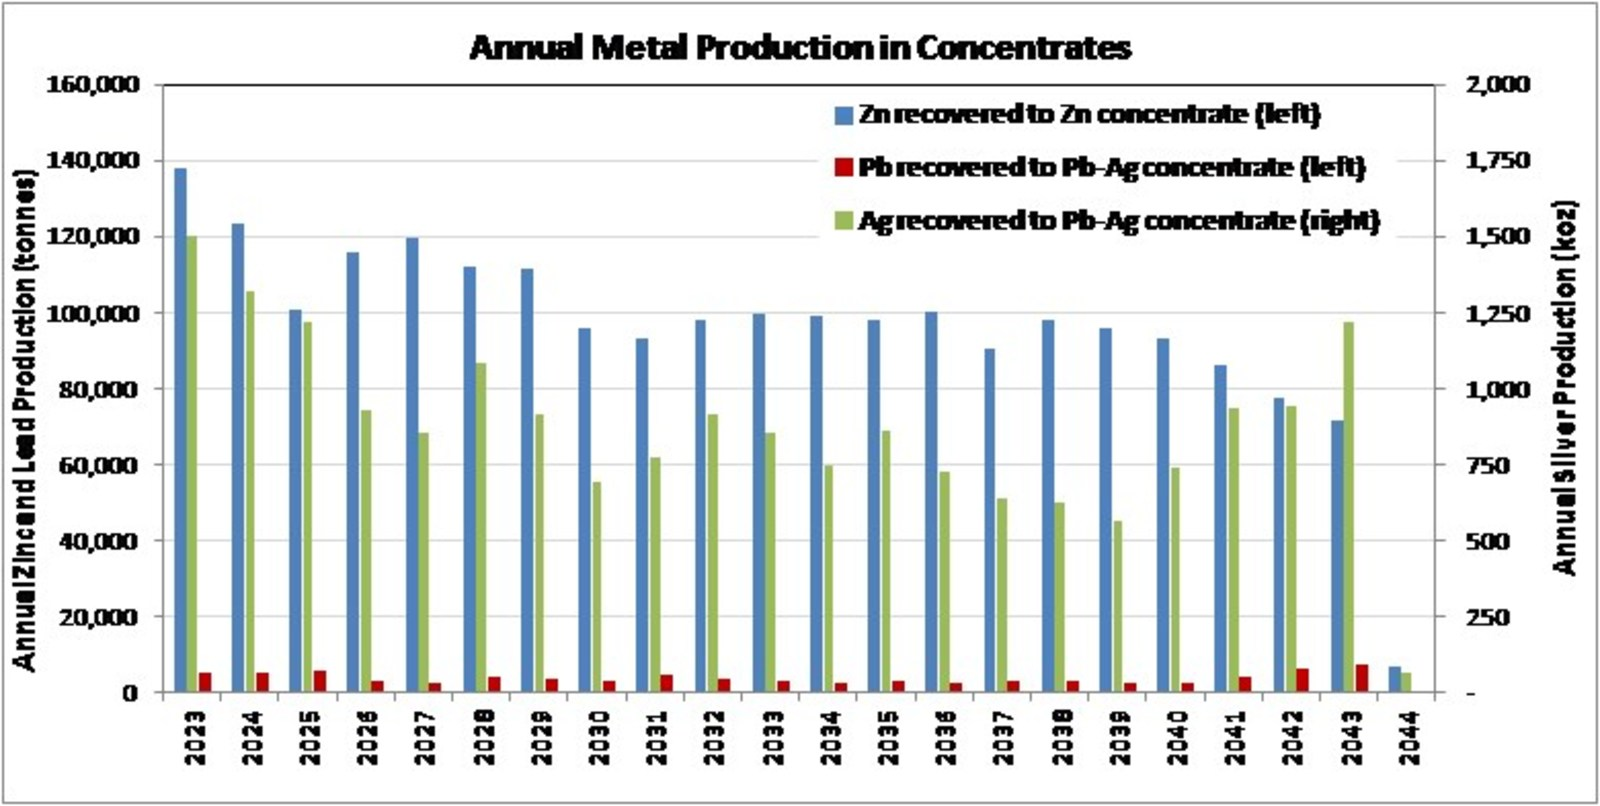 Annual Metal Production in Concentrates